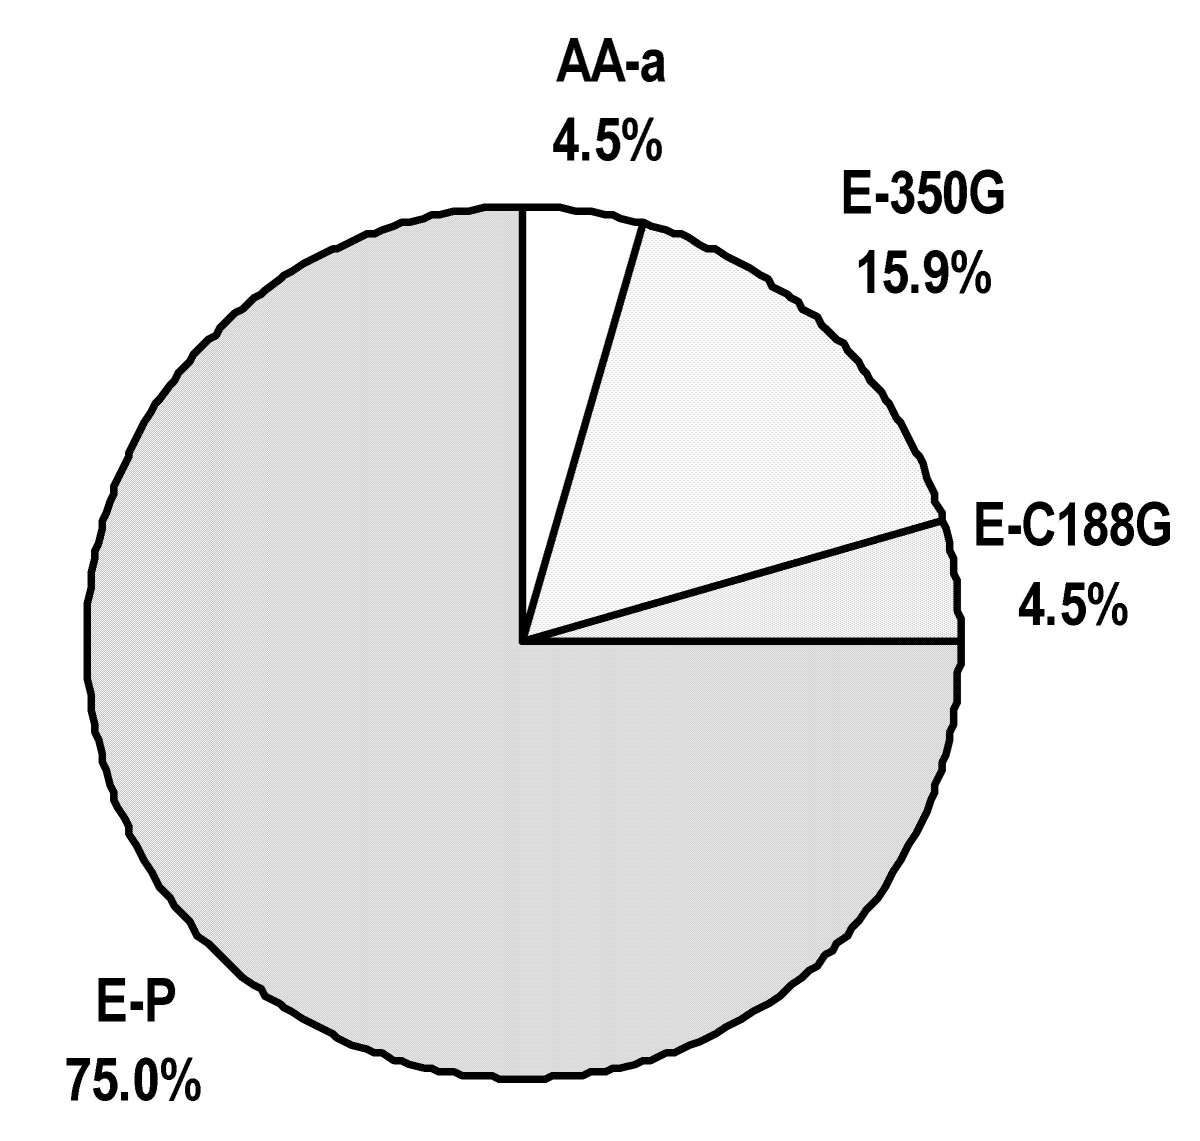 http://static-content.springer.com/image/art%3A10.1186%2F1750-9378-4-3/MediaObjects/13027_2008_Article_49_Fig1_HTML.jpg